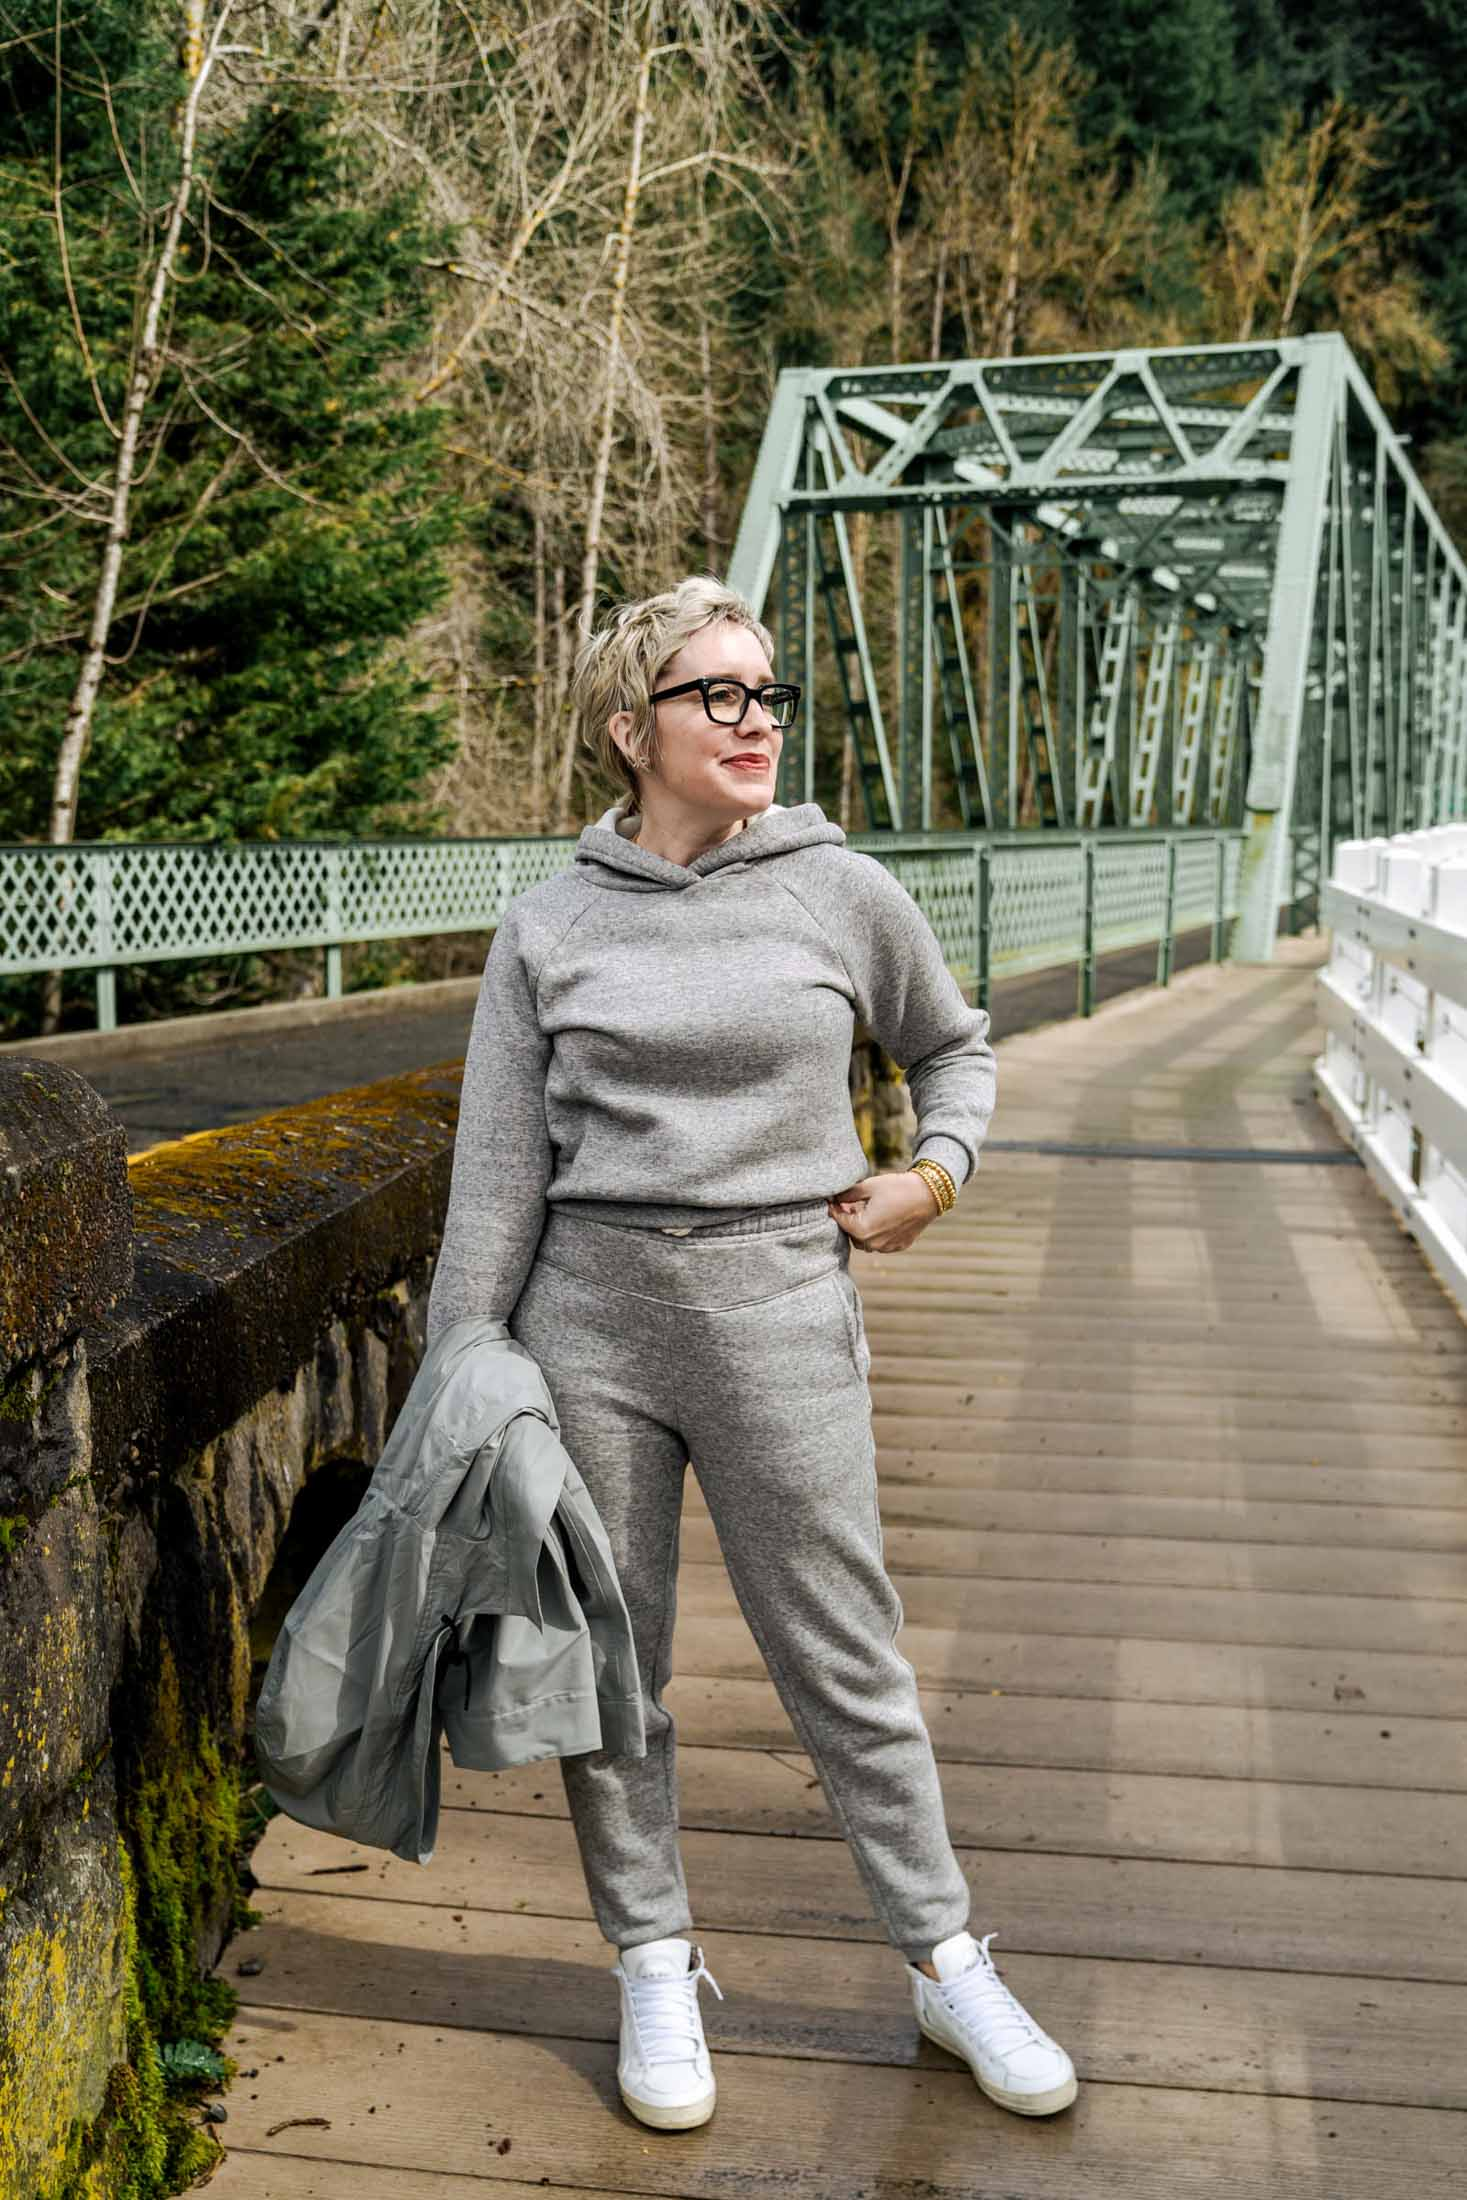 I was intrigued by this newish sweatsuit set by Madewell, from their MWL line, part of their new eco-friendly Do Well shop. But will they live up to my expectations?